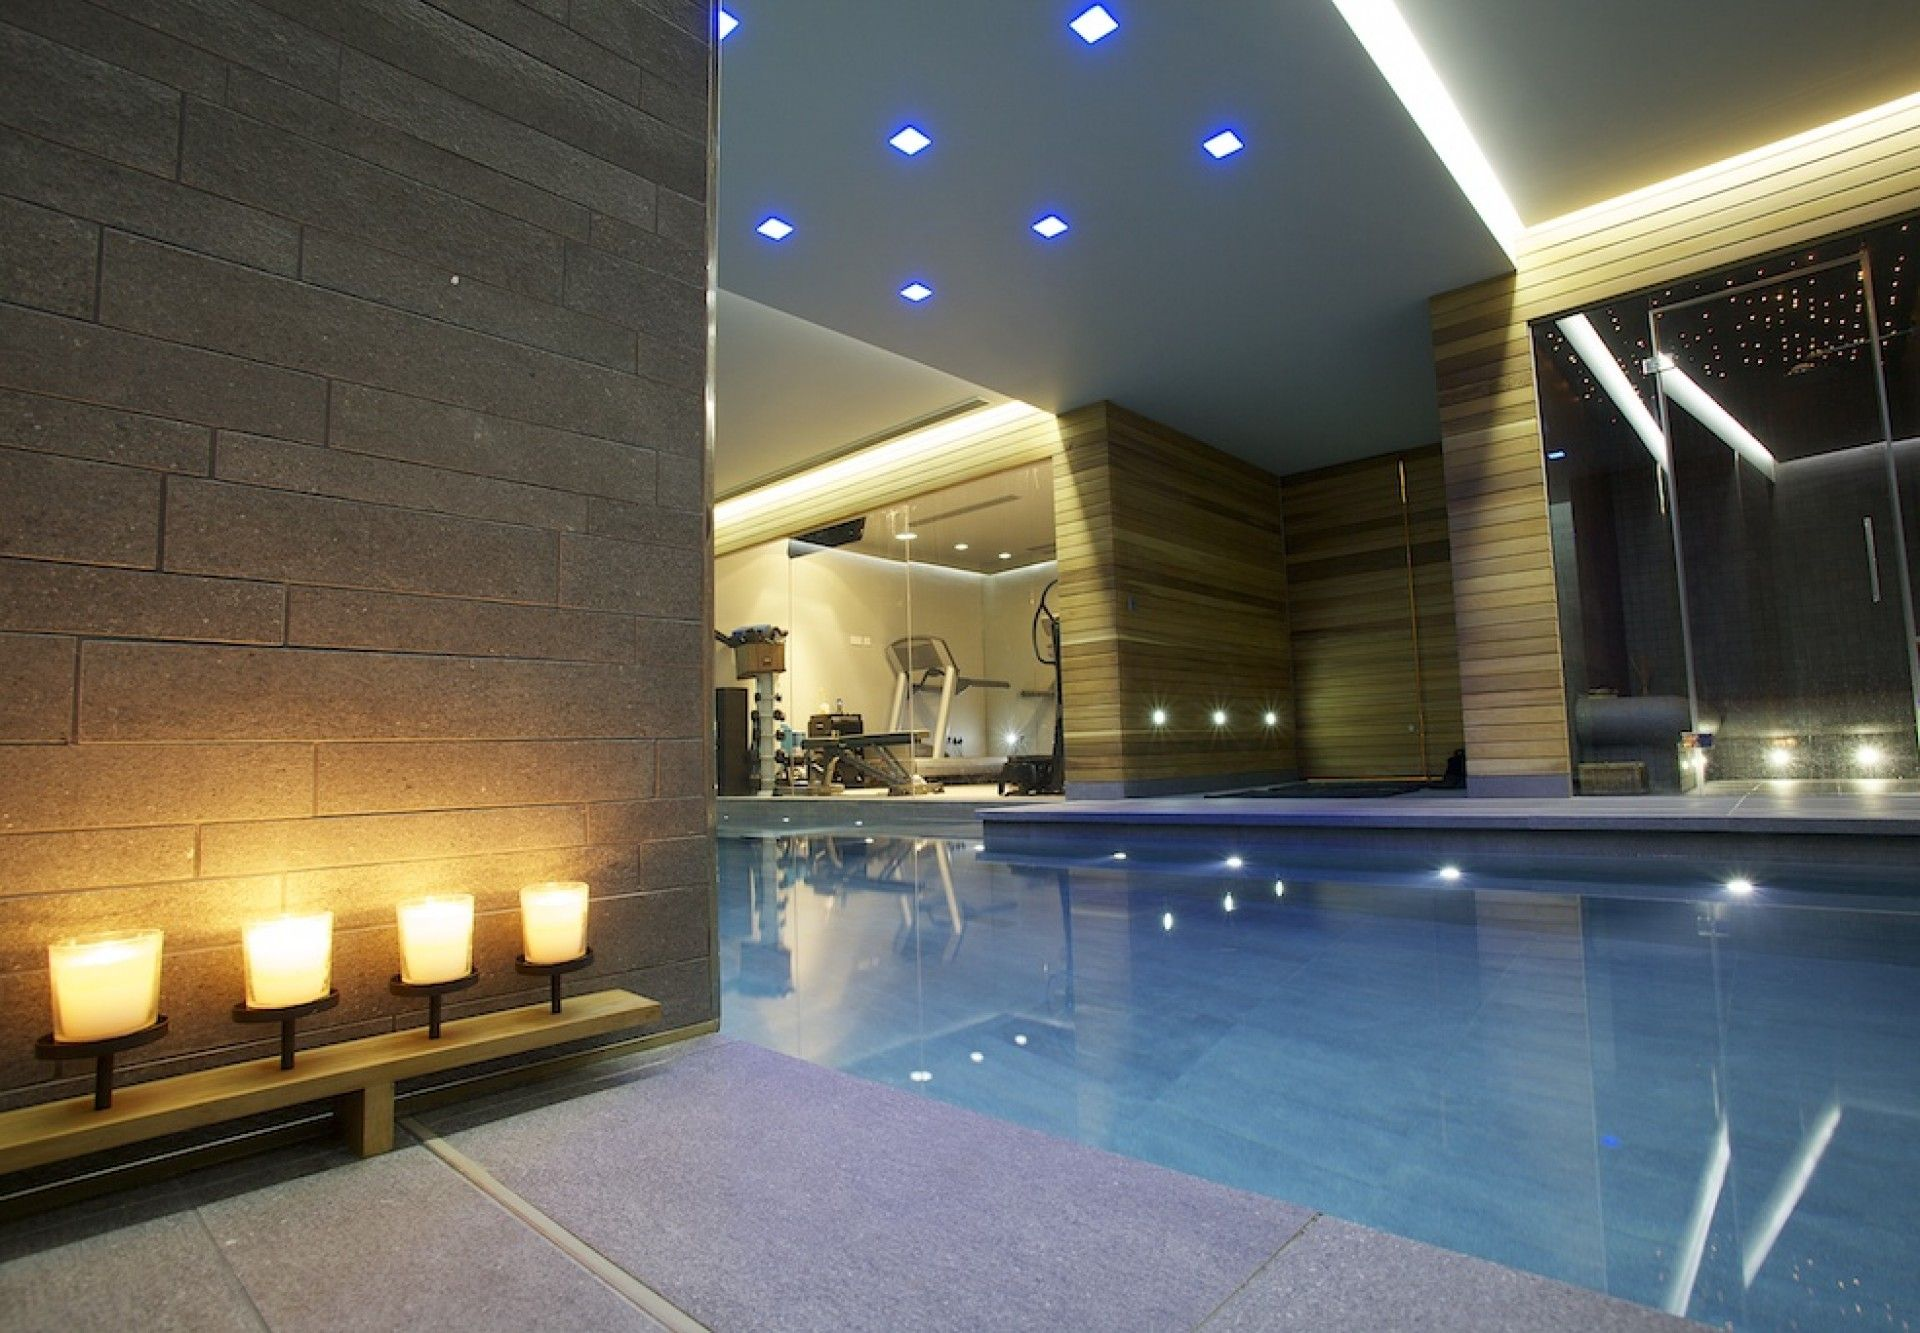 Basement indoor swimming pool in london home spa - Public indoor swimming pools el paso tx ...